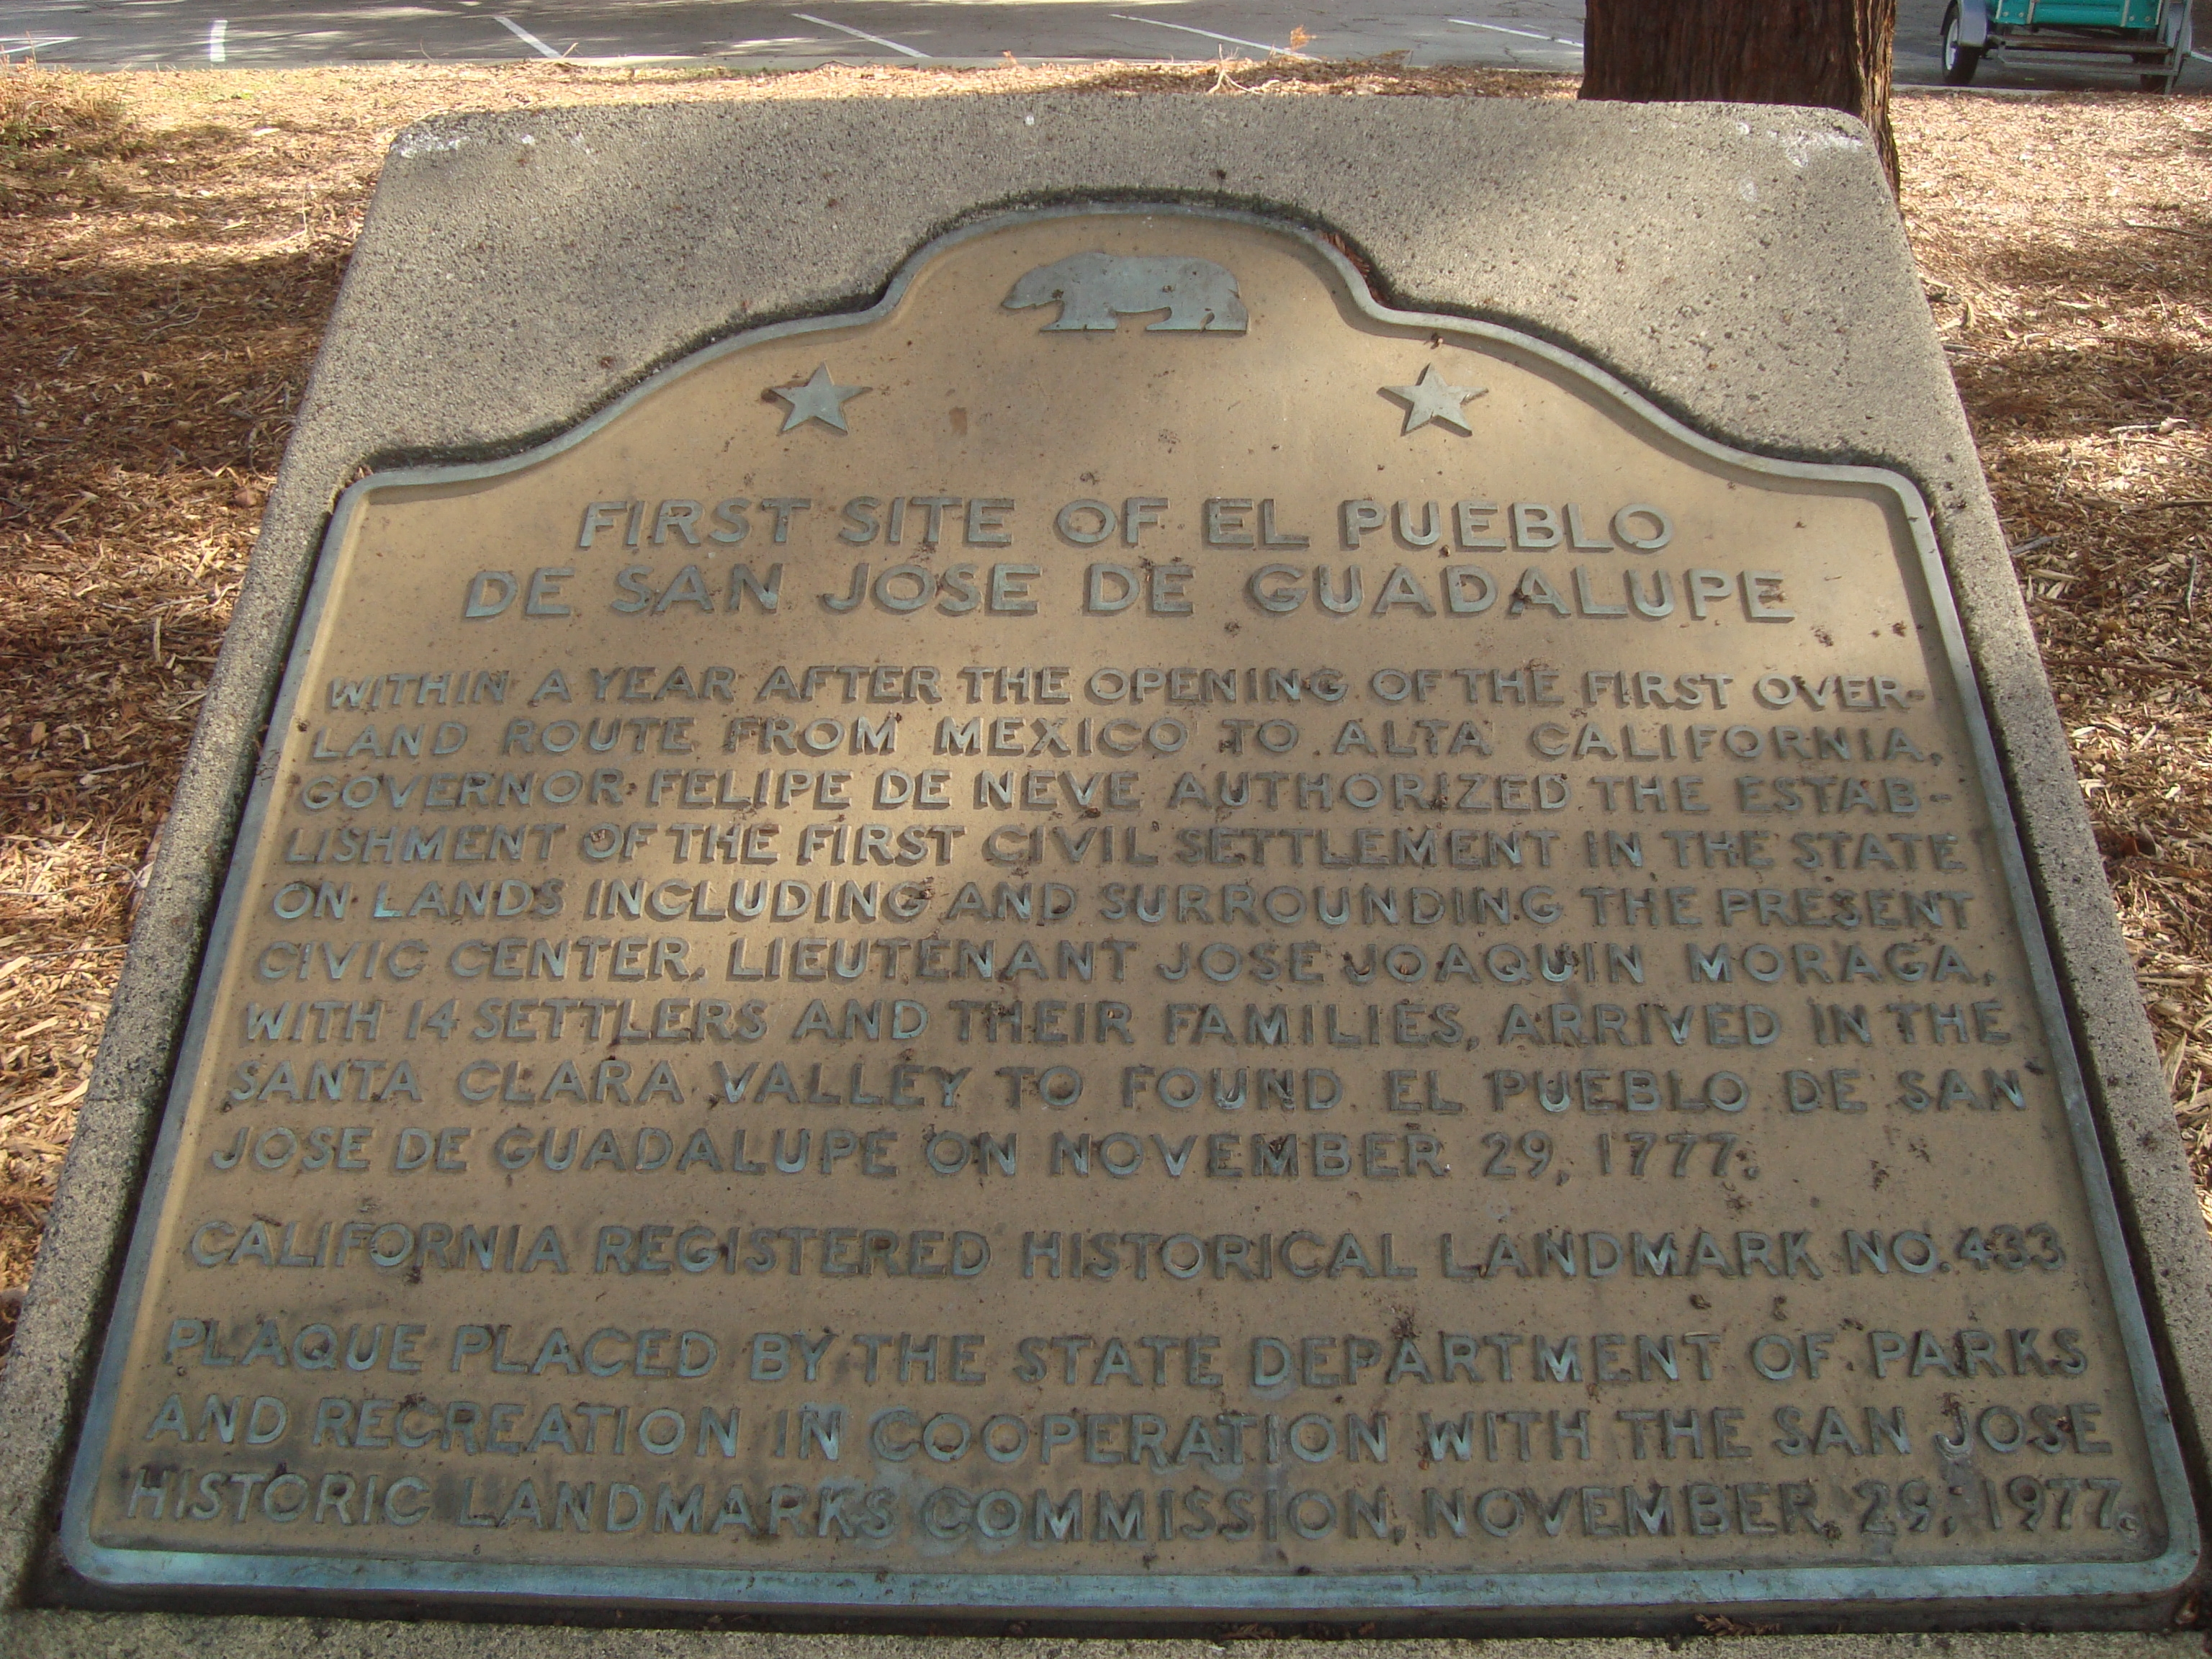 First Site of El Pueblo de San Jose de Guadalupe Marker